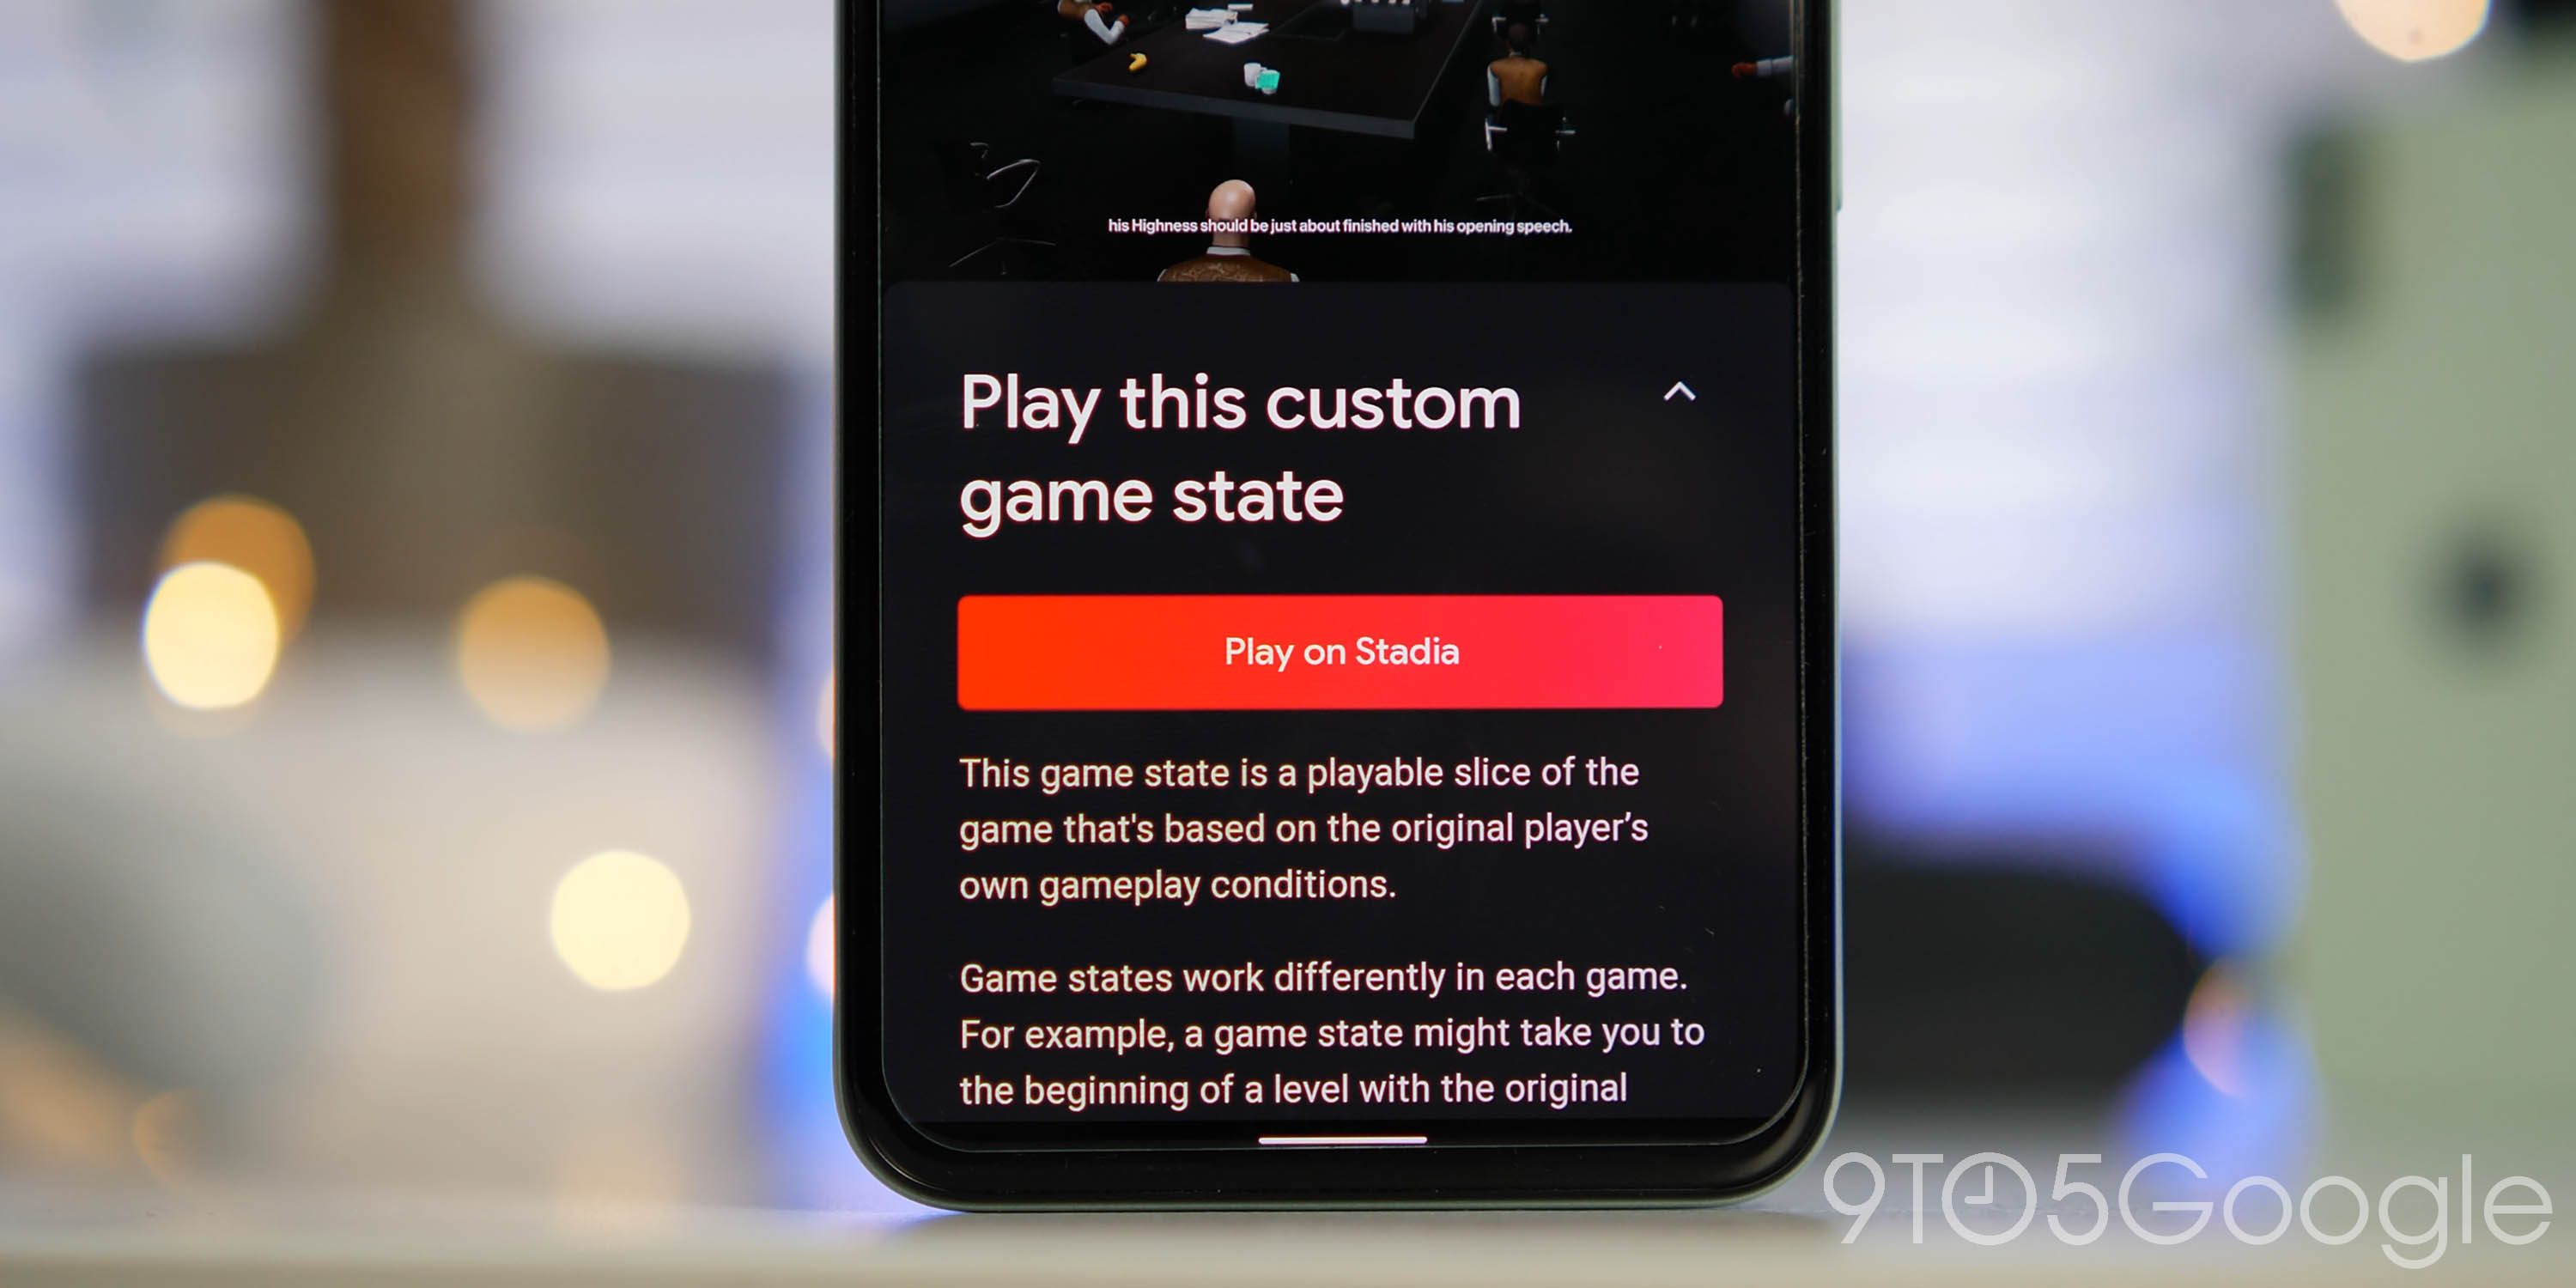 Implemented with State Sharing in Google Stadia [Video]